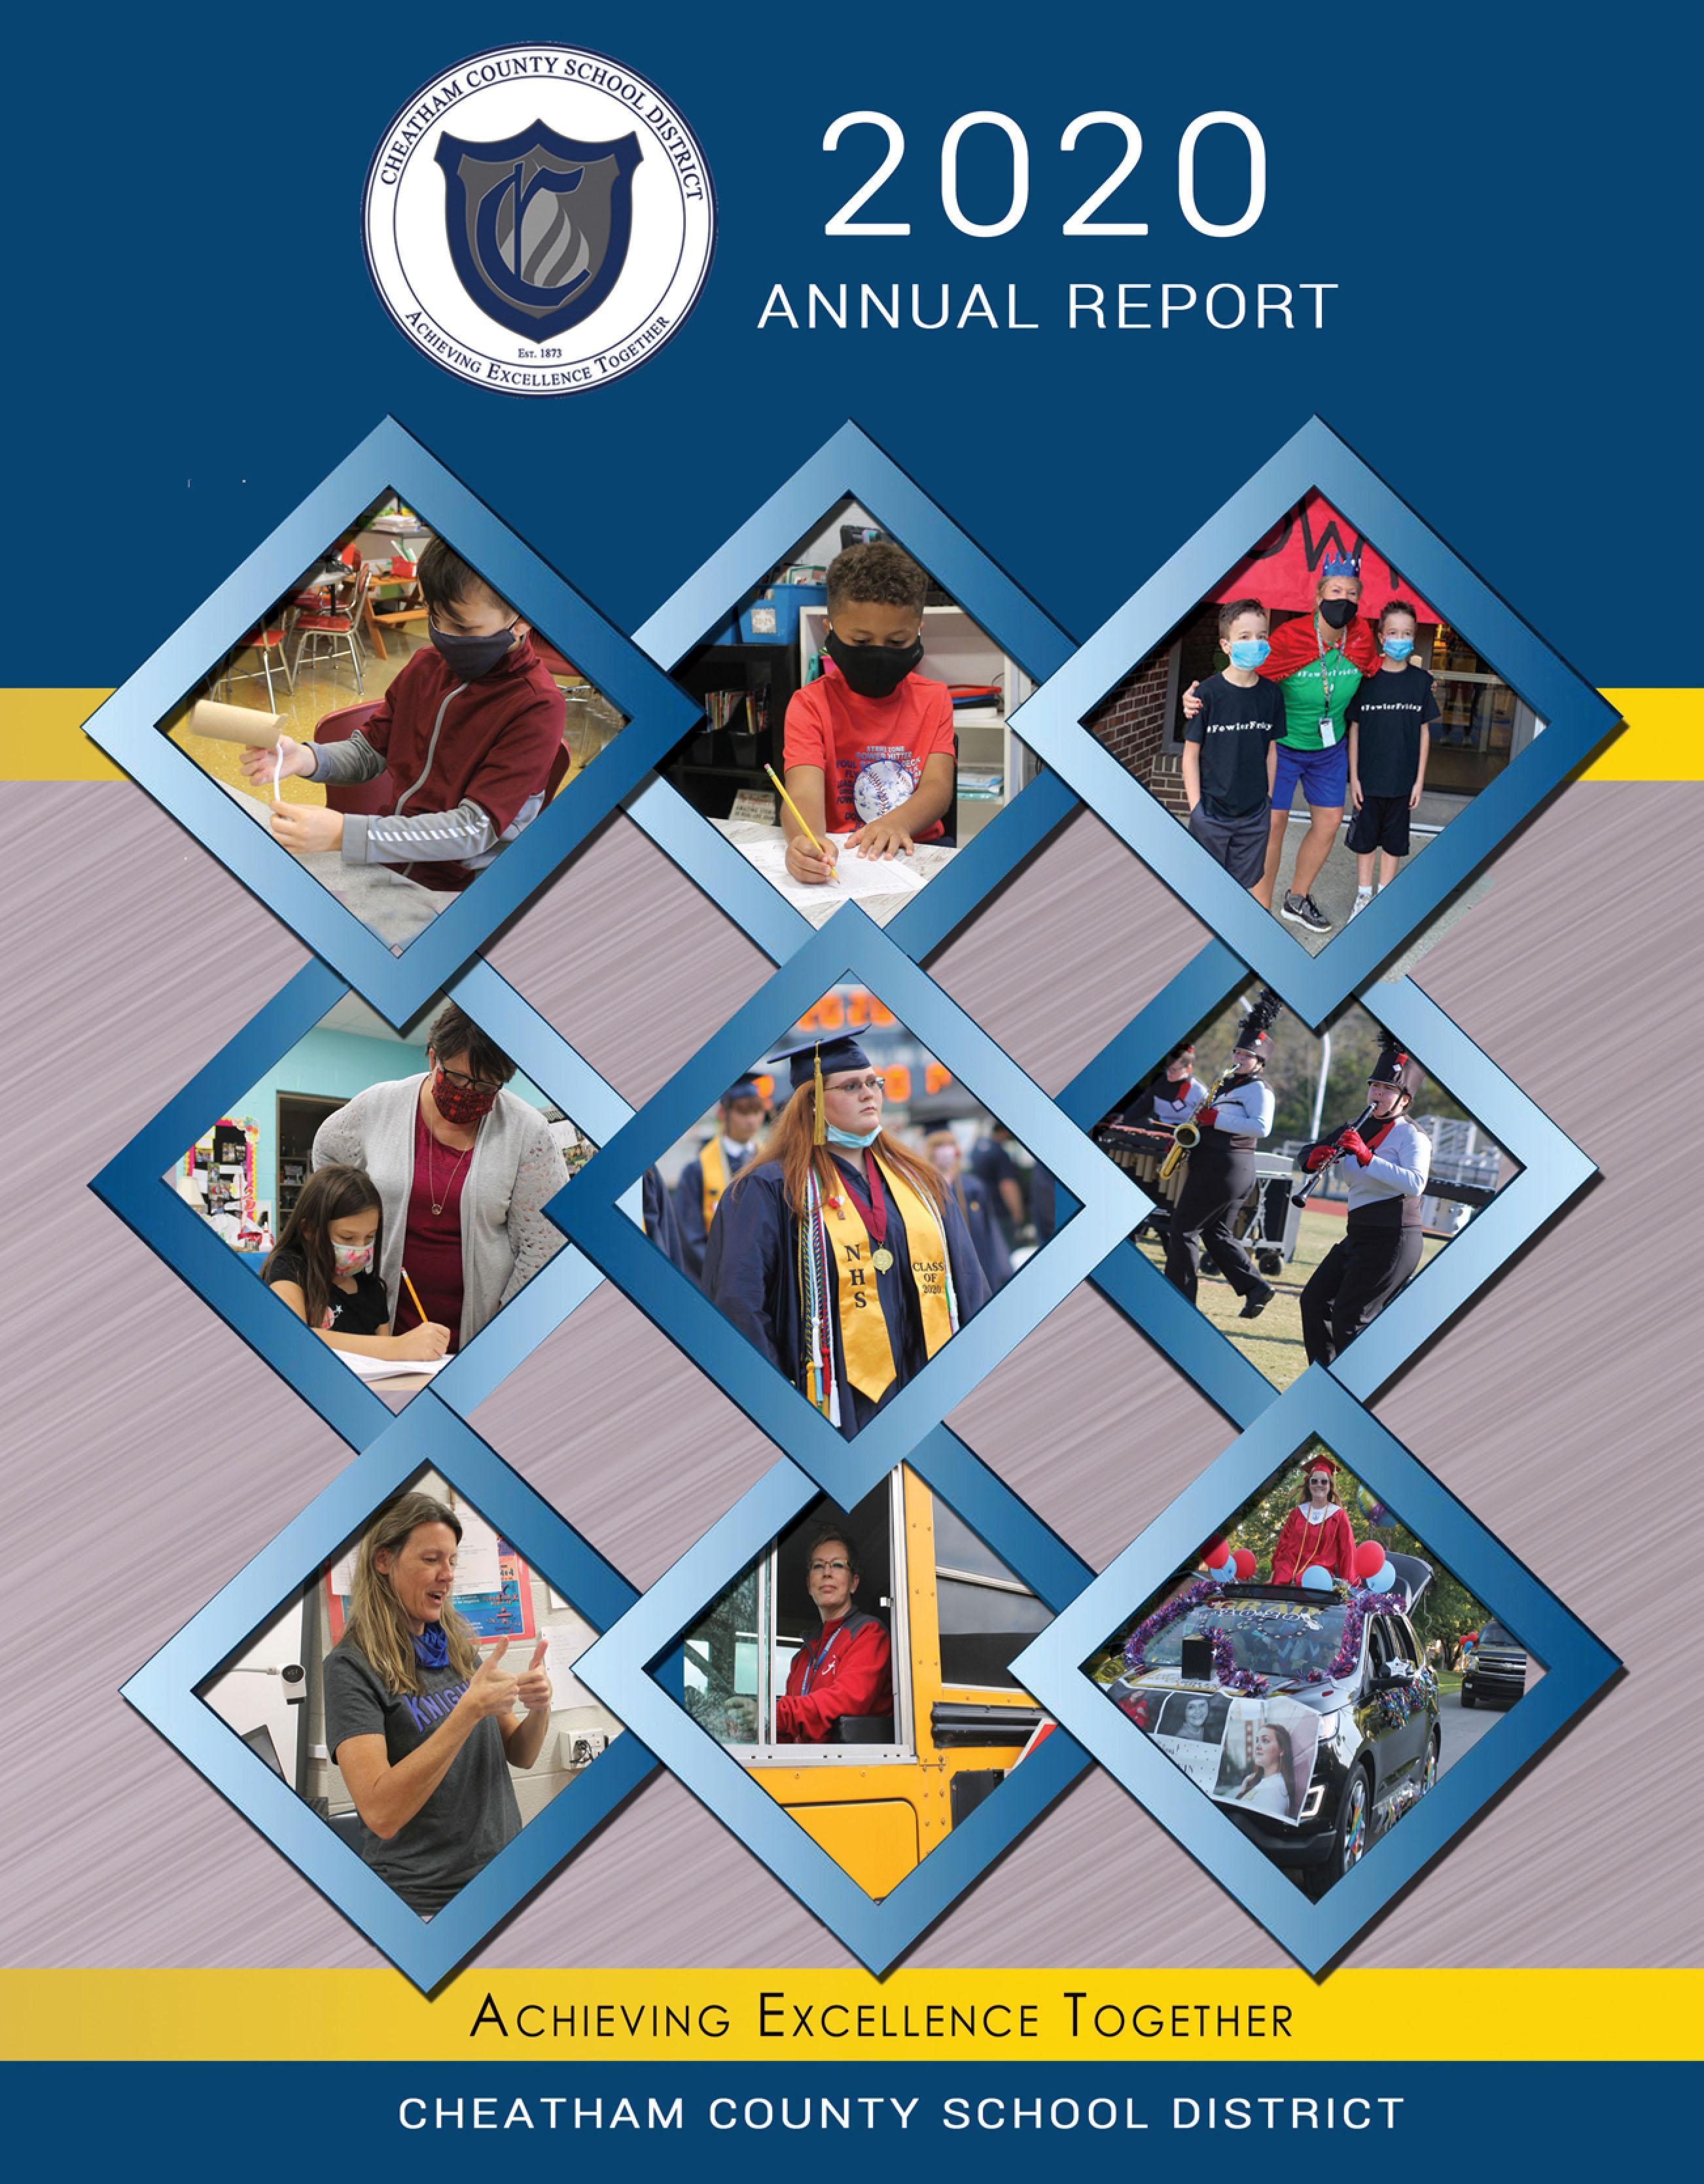 2020 Cheatham County School District Annual Report